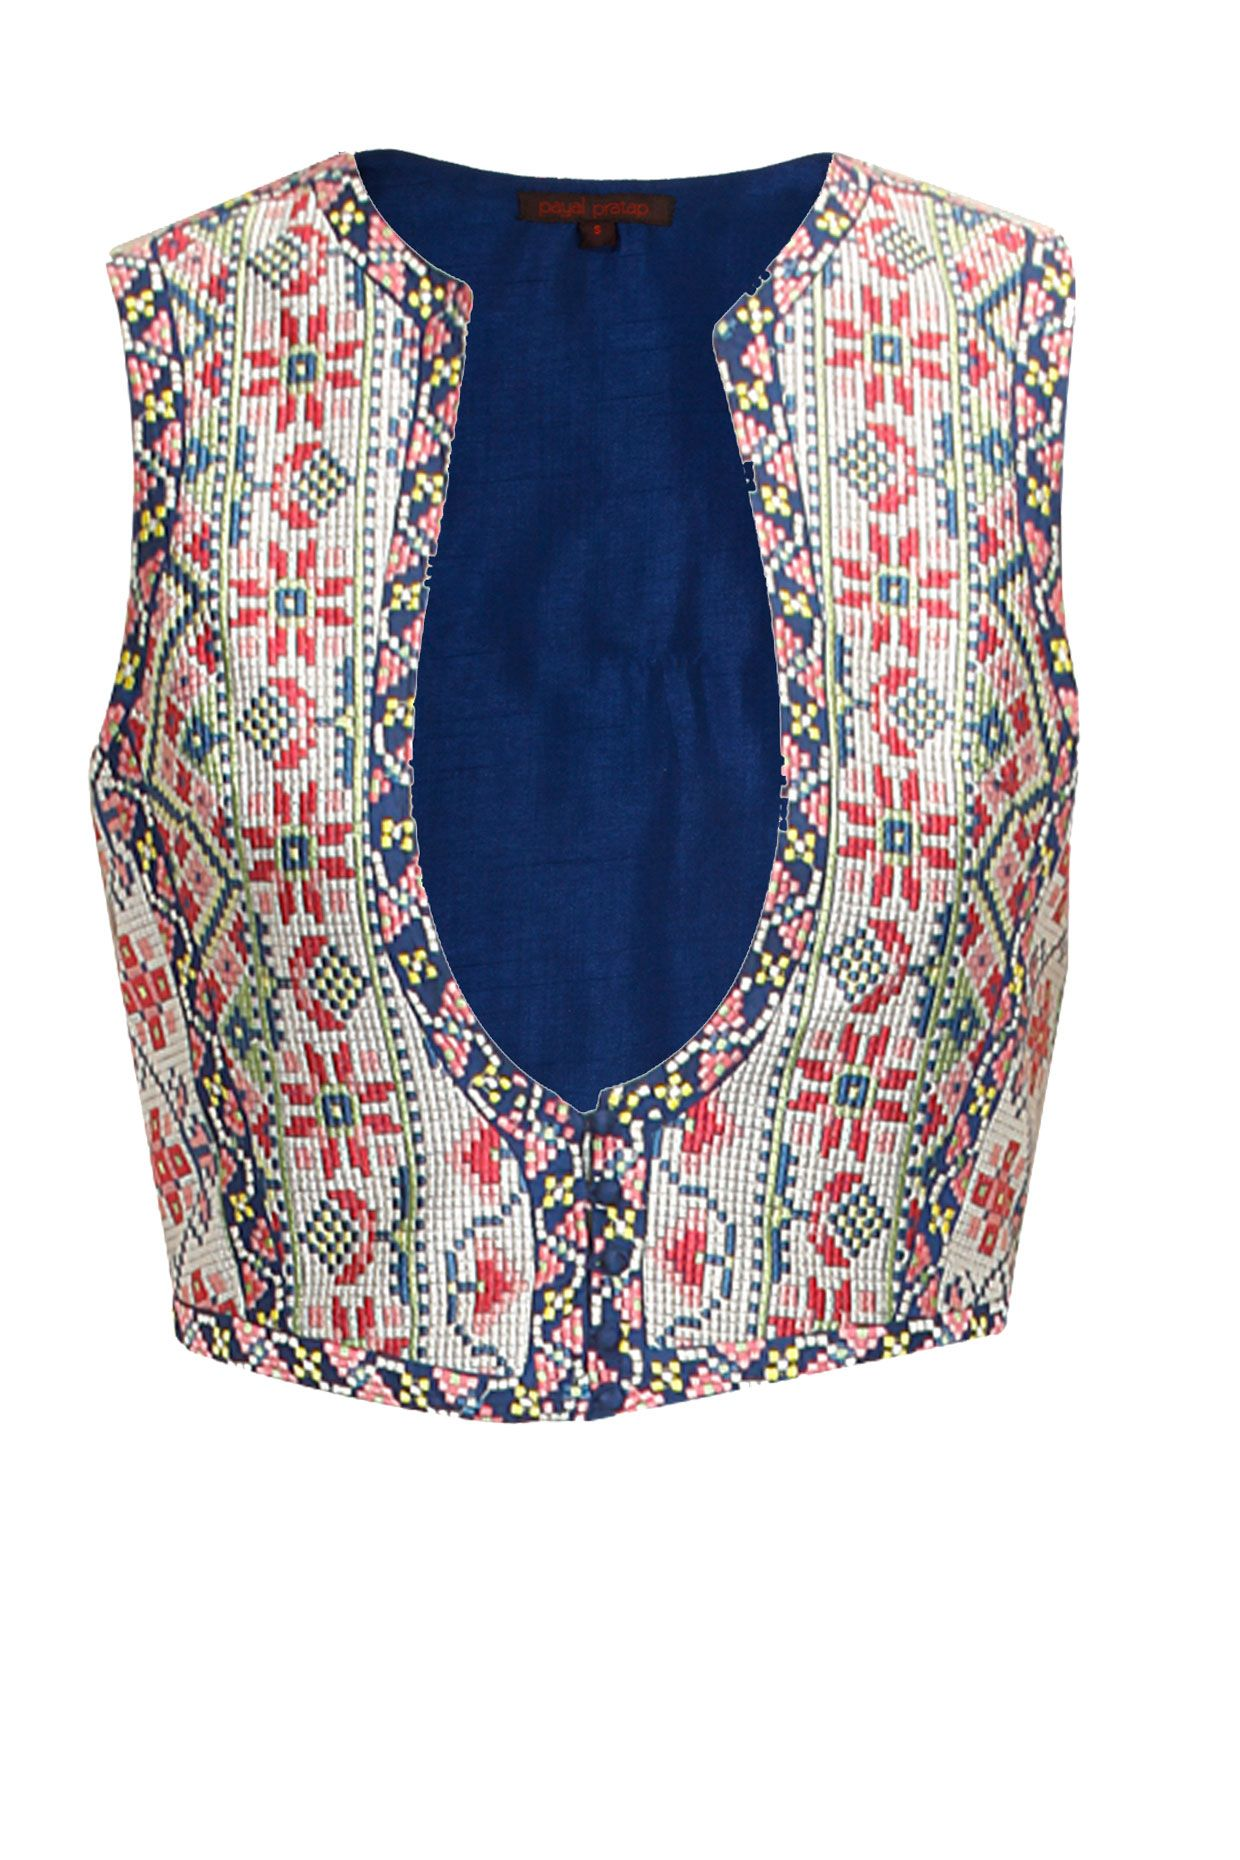 Indigo embroidered gilet available only at Pernia\'s Pop-Up Shop ...